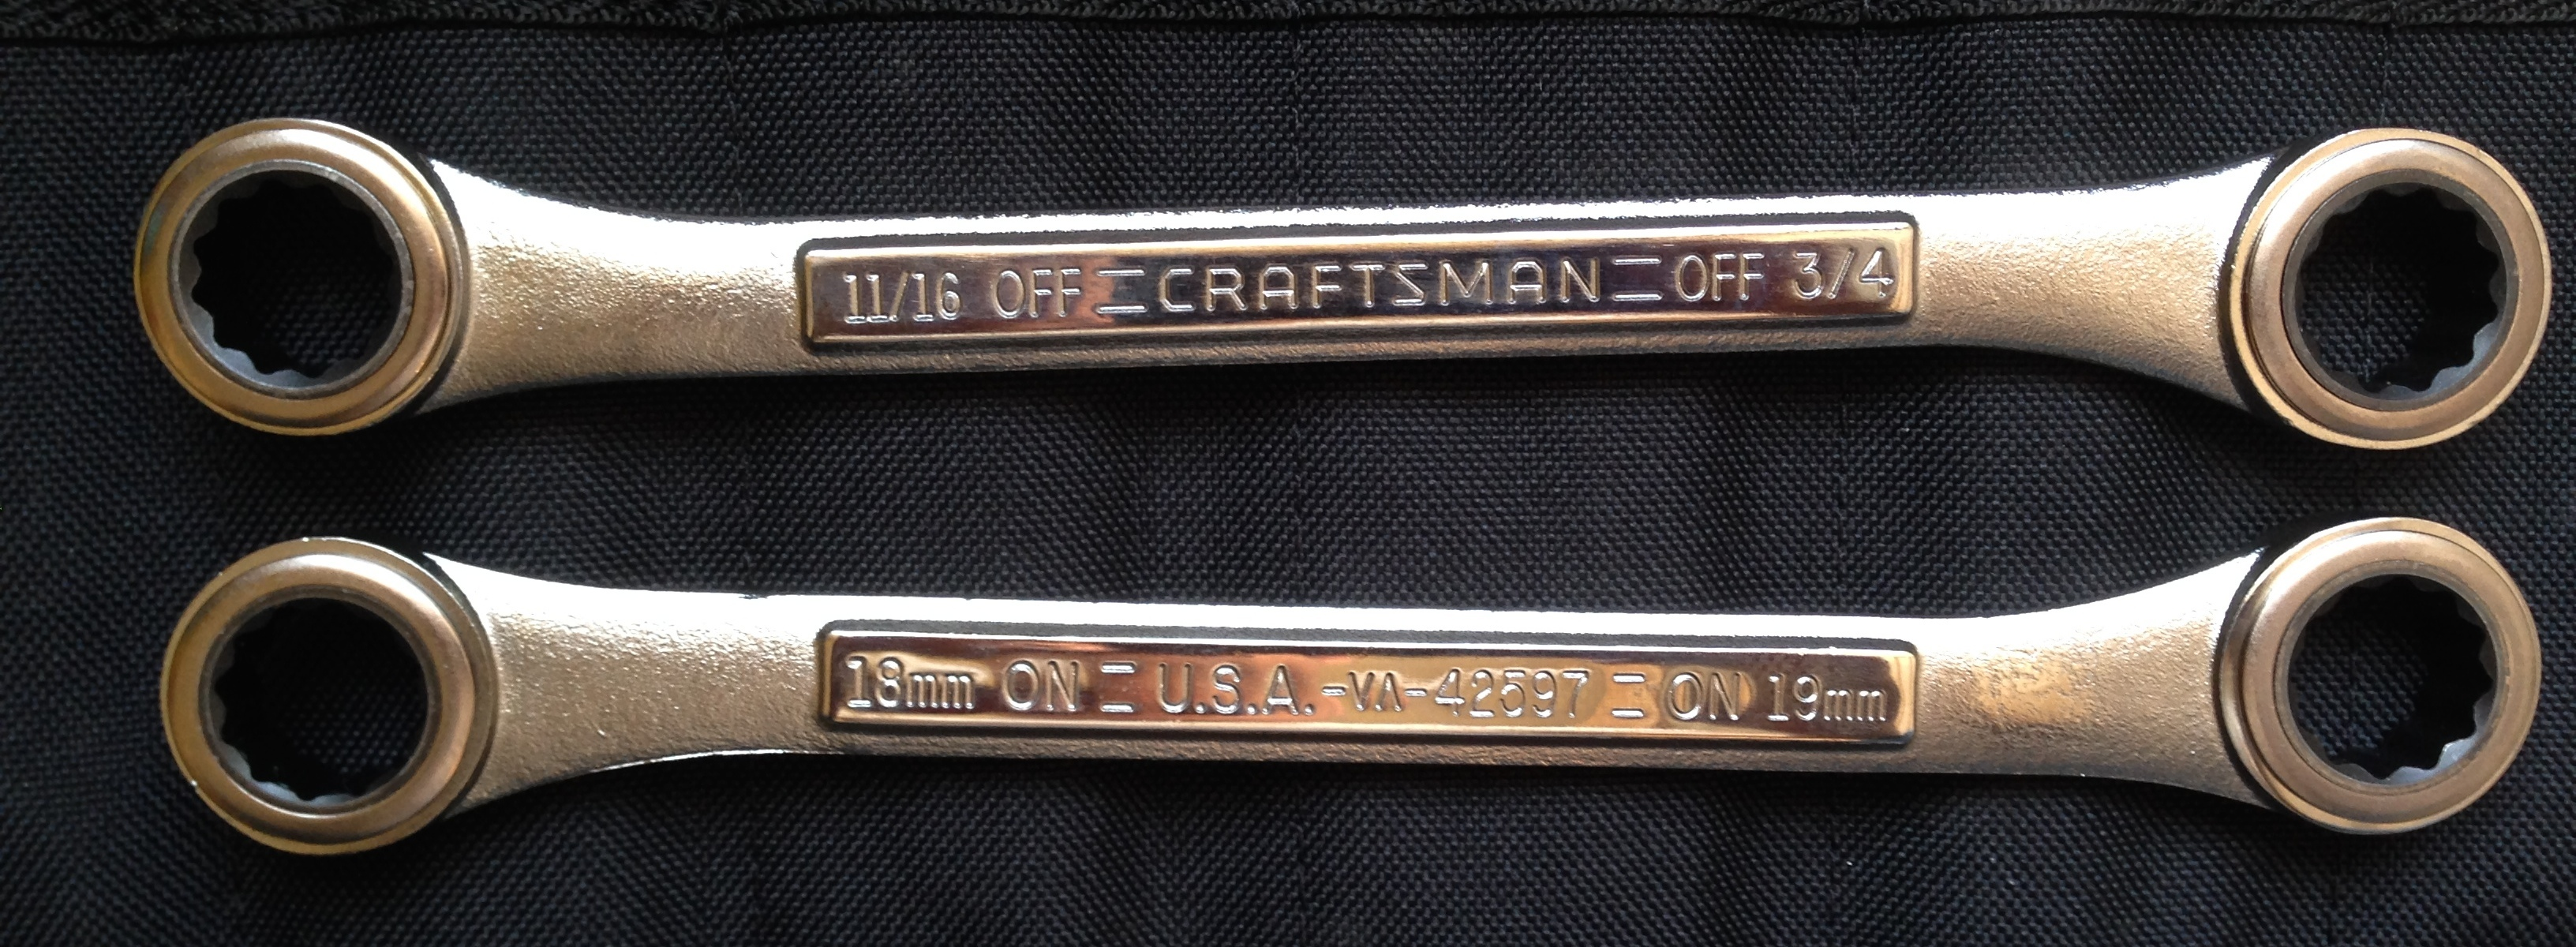 dating craftsman wrenches Sears craftsman wrenches dave's fix it's loading  who has the best wrenches, snap-on, craftsman, pittsburgh (harbor freight), or matco.